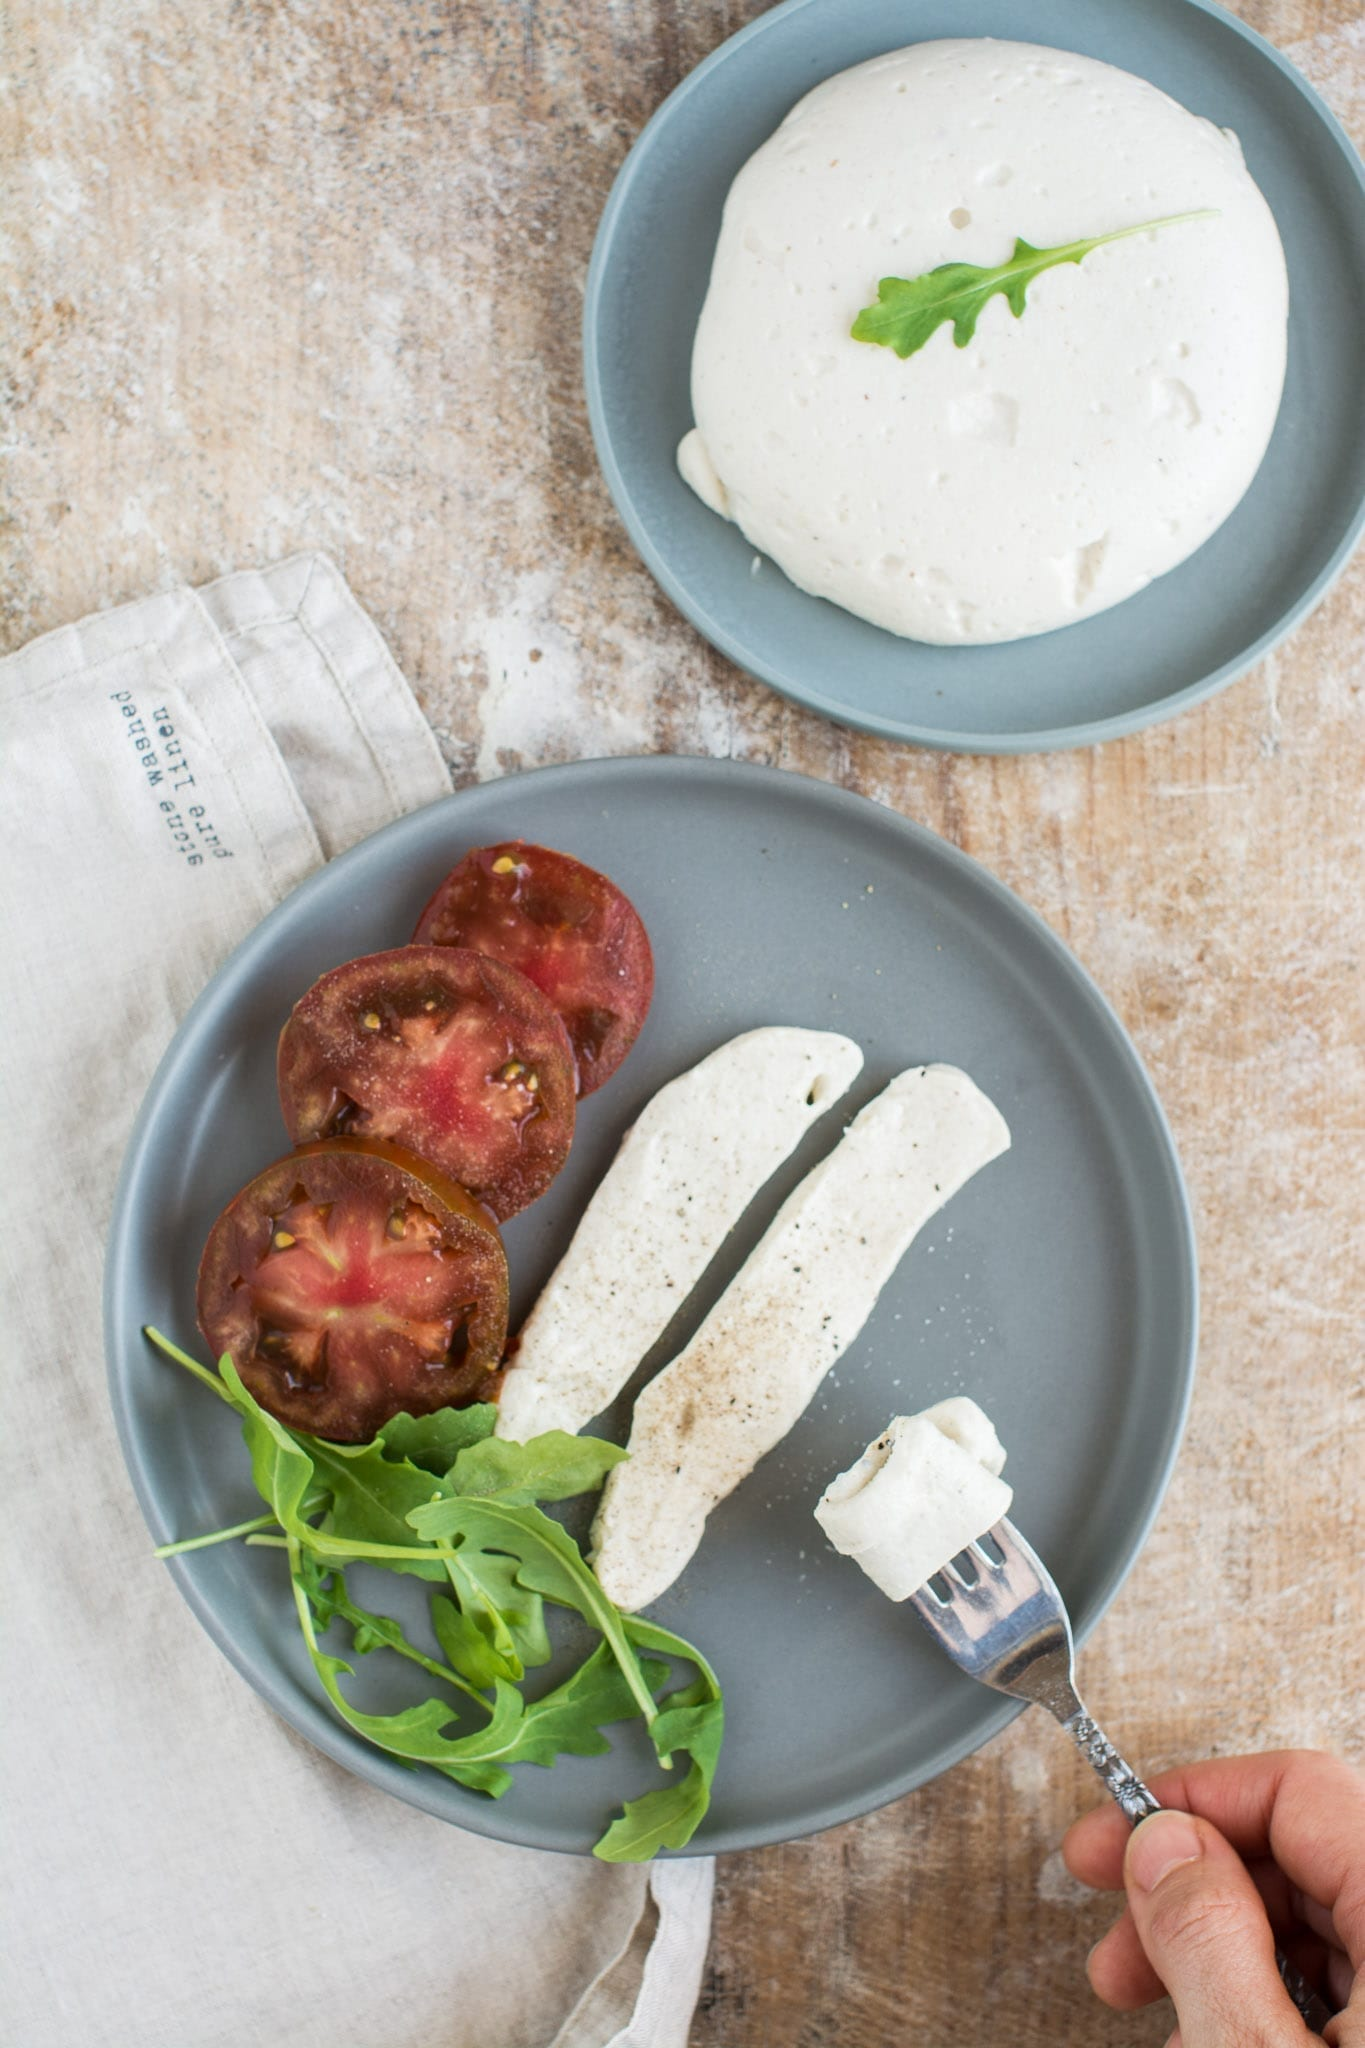 Cashew based vegan mozzarella cheese recipe that is oil-free and gluten-free yet so creamy, soft and tasty.